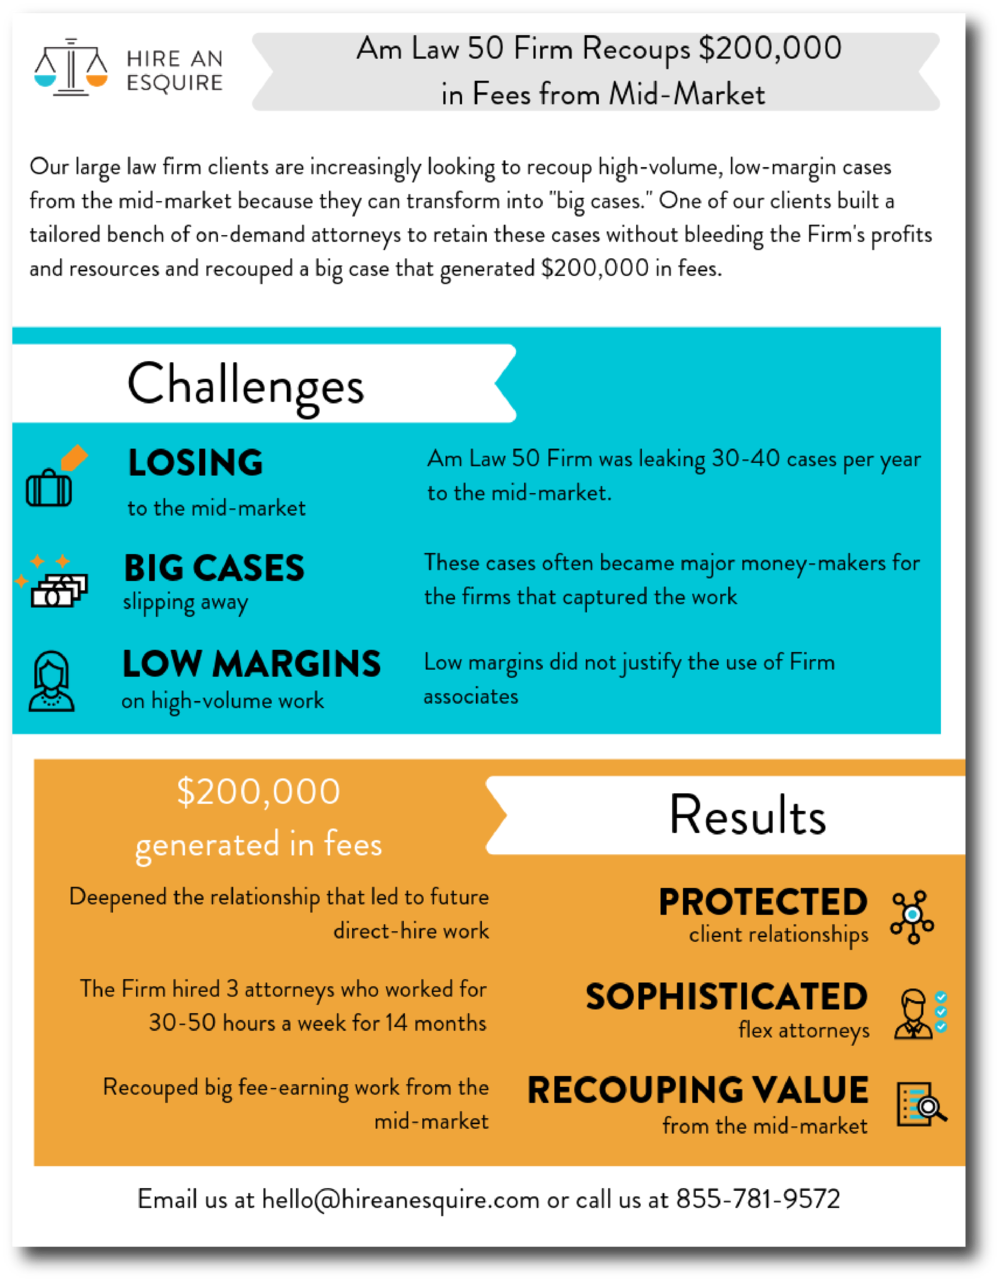 Am Law 50 Firm $200,000 Case Study View.png